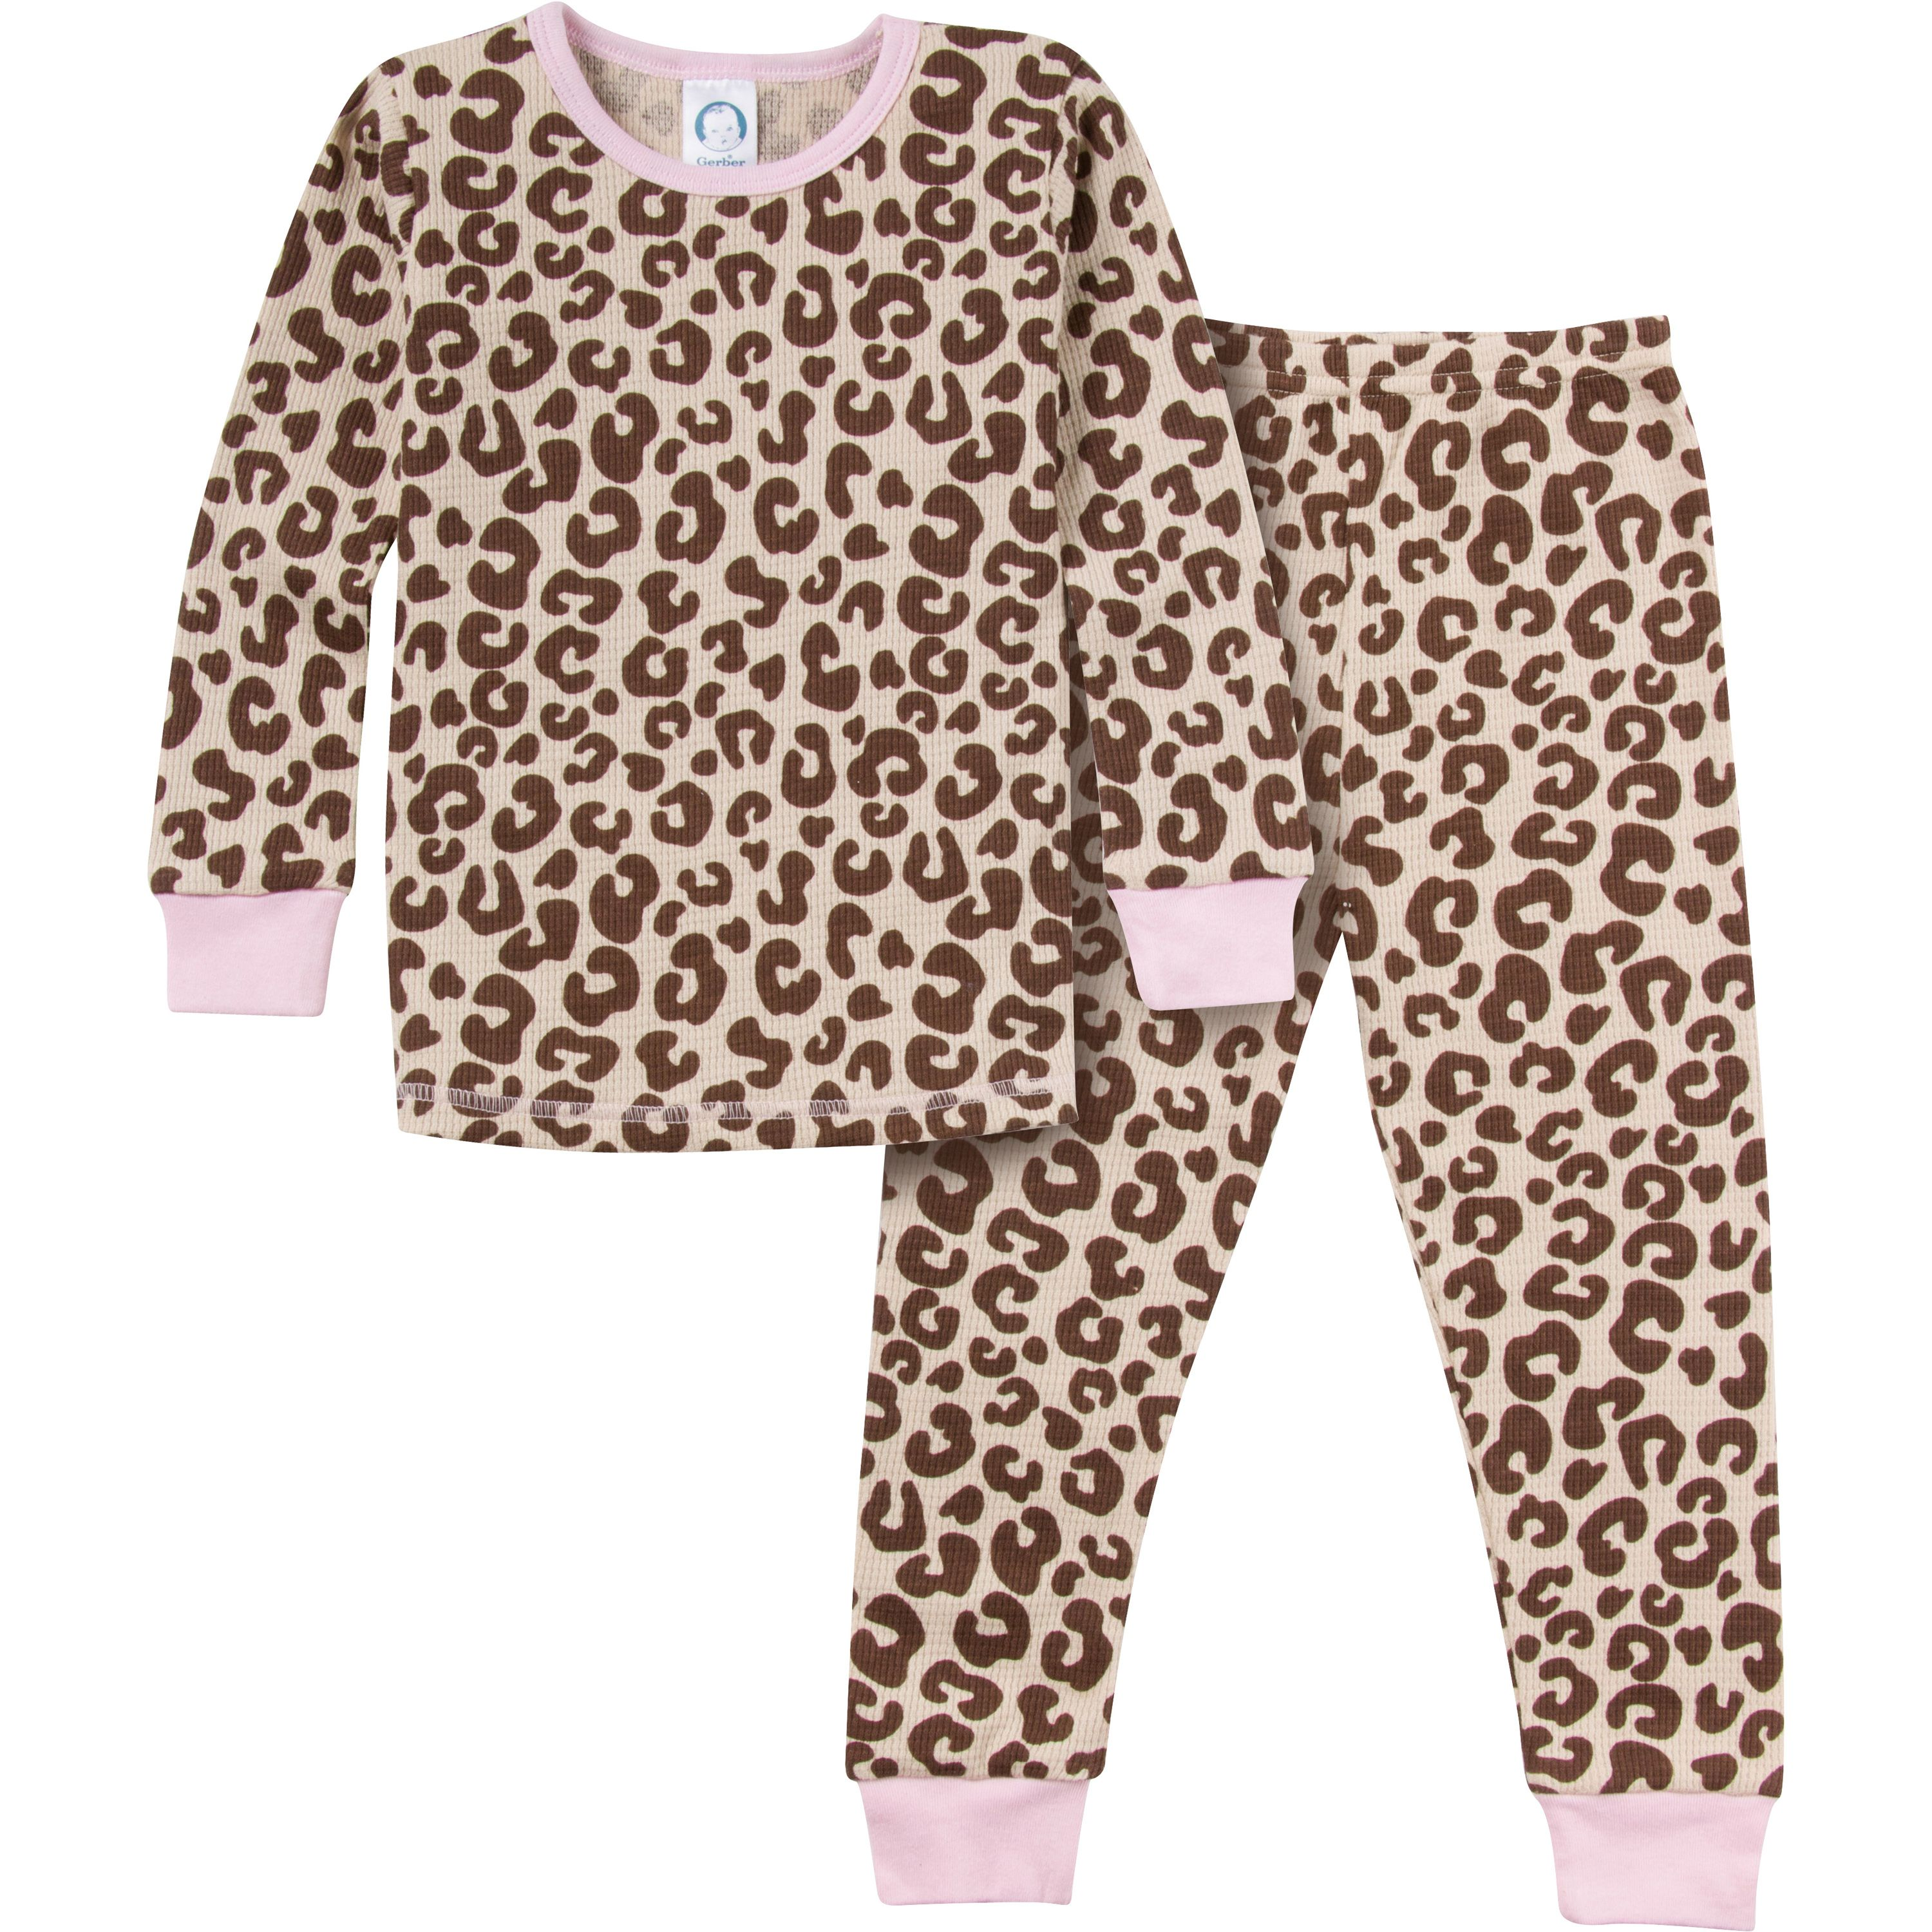 Gerber Girls Animal Print 2 Piece Thermal Pajamas Looks